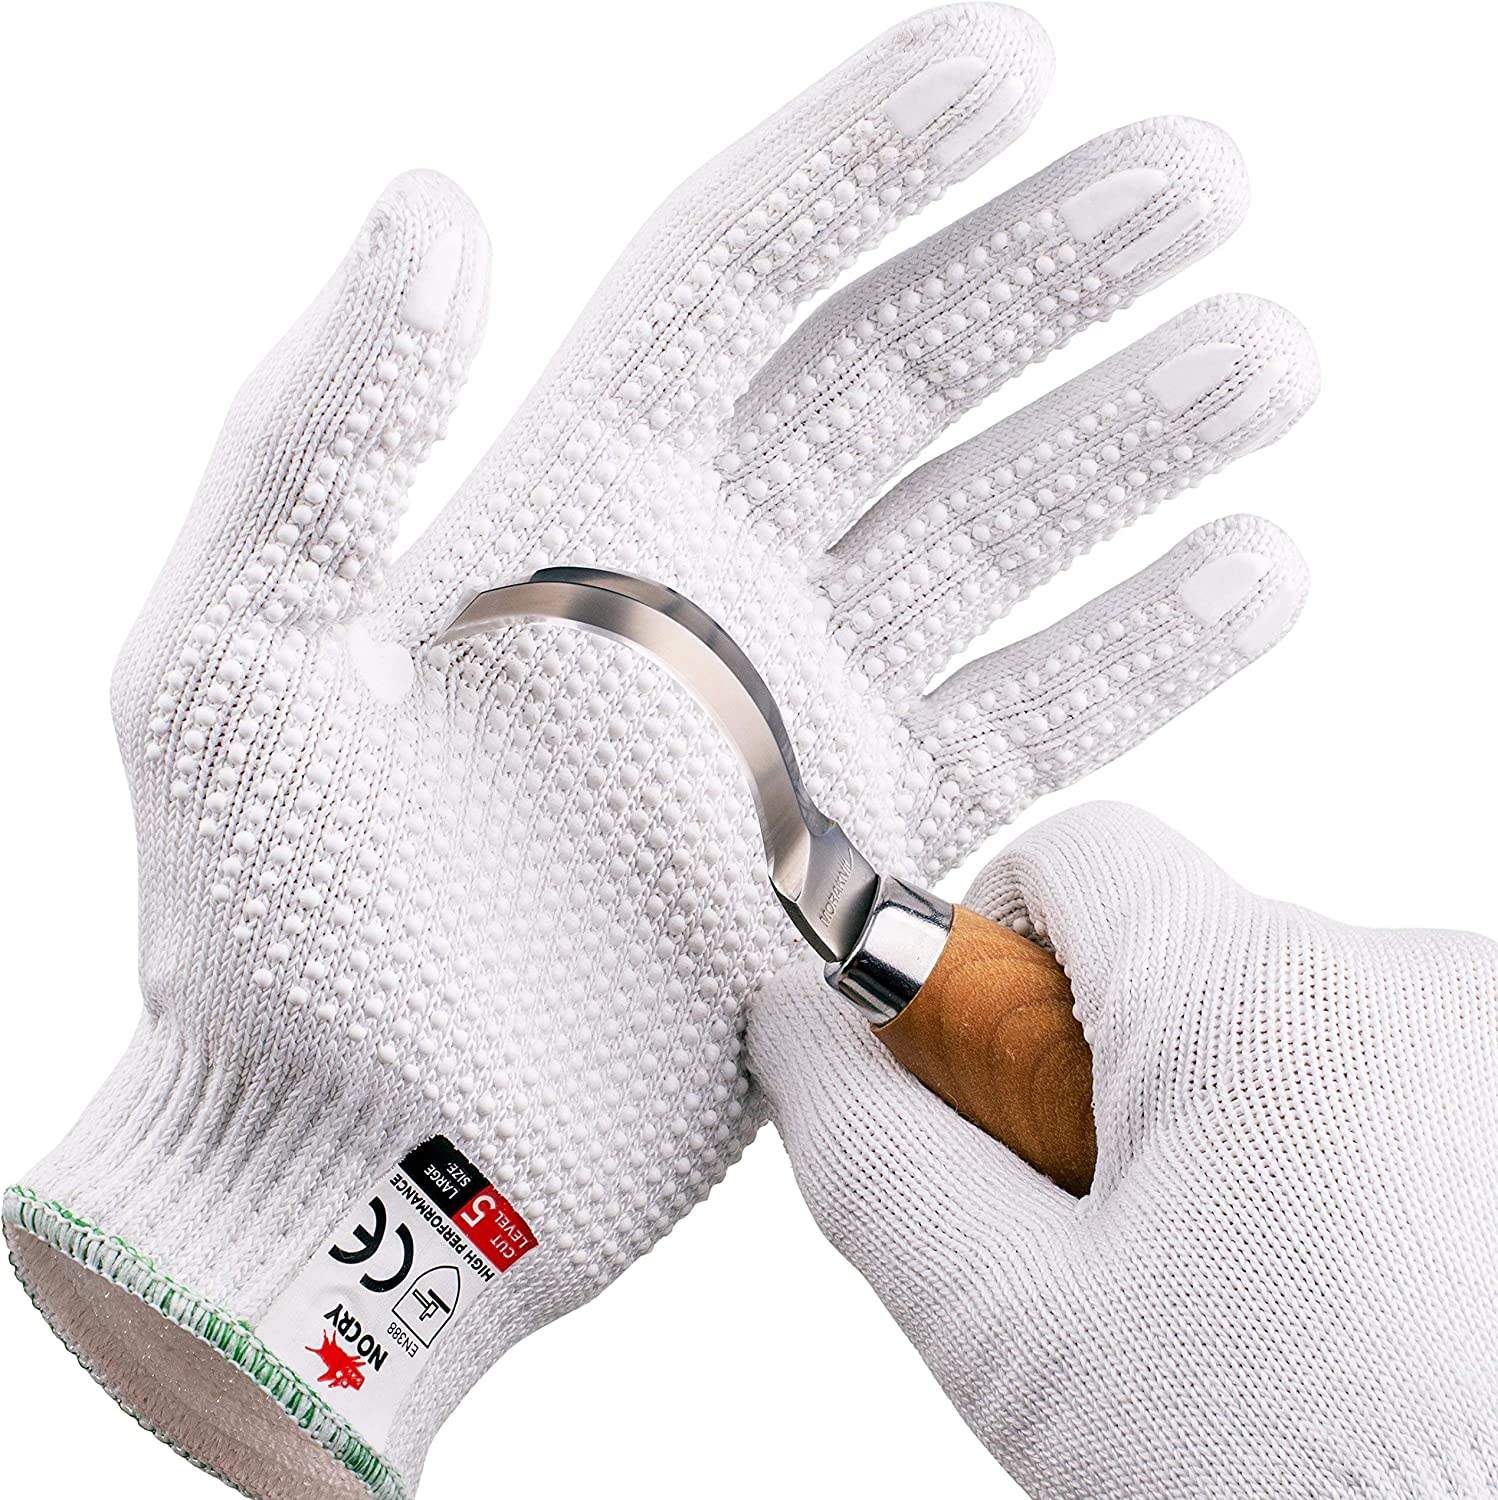 NoCry Cut Resistant Protective Work Gloves with Rubber Grip Dots. Tough and Durable Stainless Steel Material, EN388 Certified. 1 Pair. White, Size Medium - -